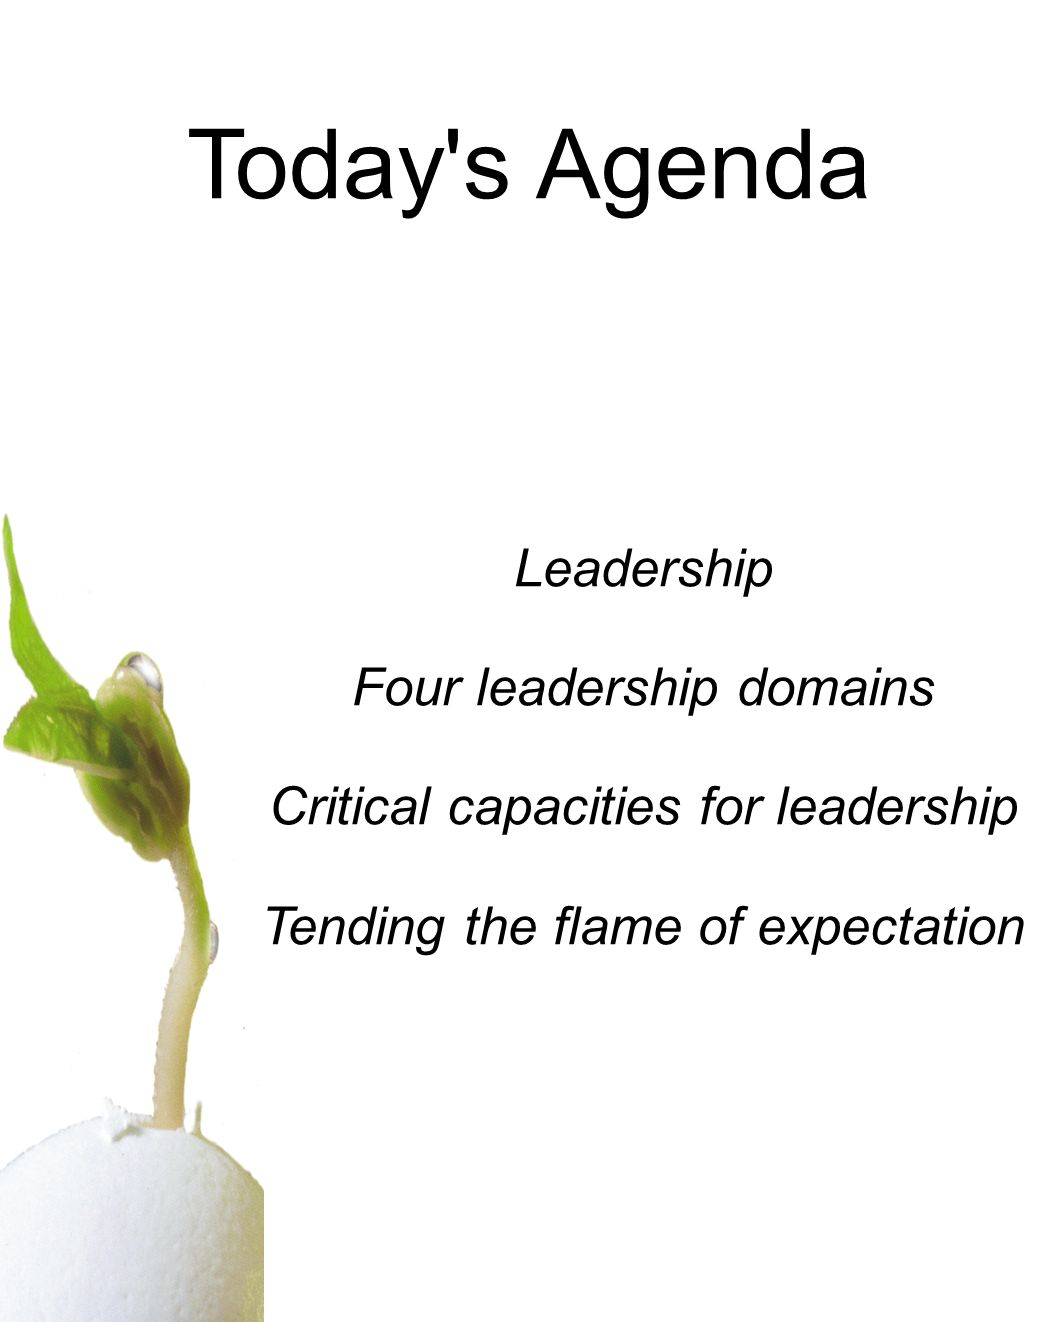 Today's Agenda Leadership Four leadership domains Critical capacities for leadership Tending the flame of expectation